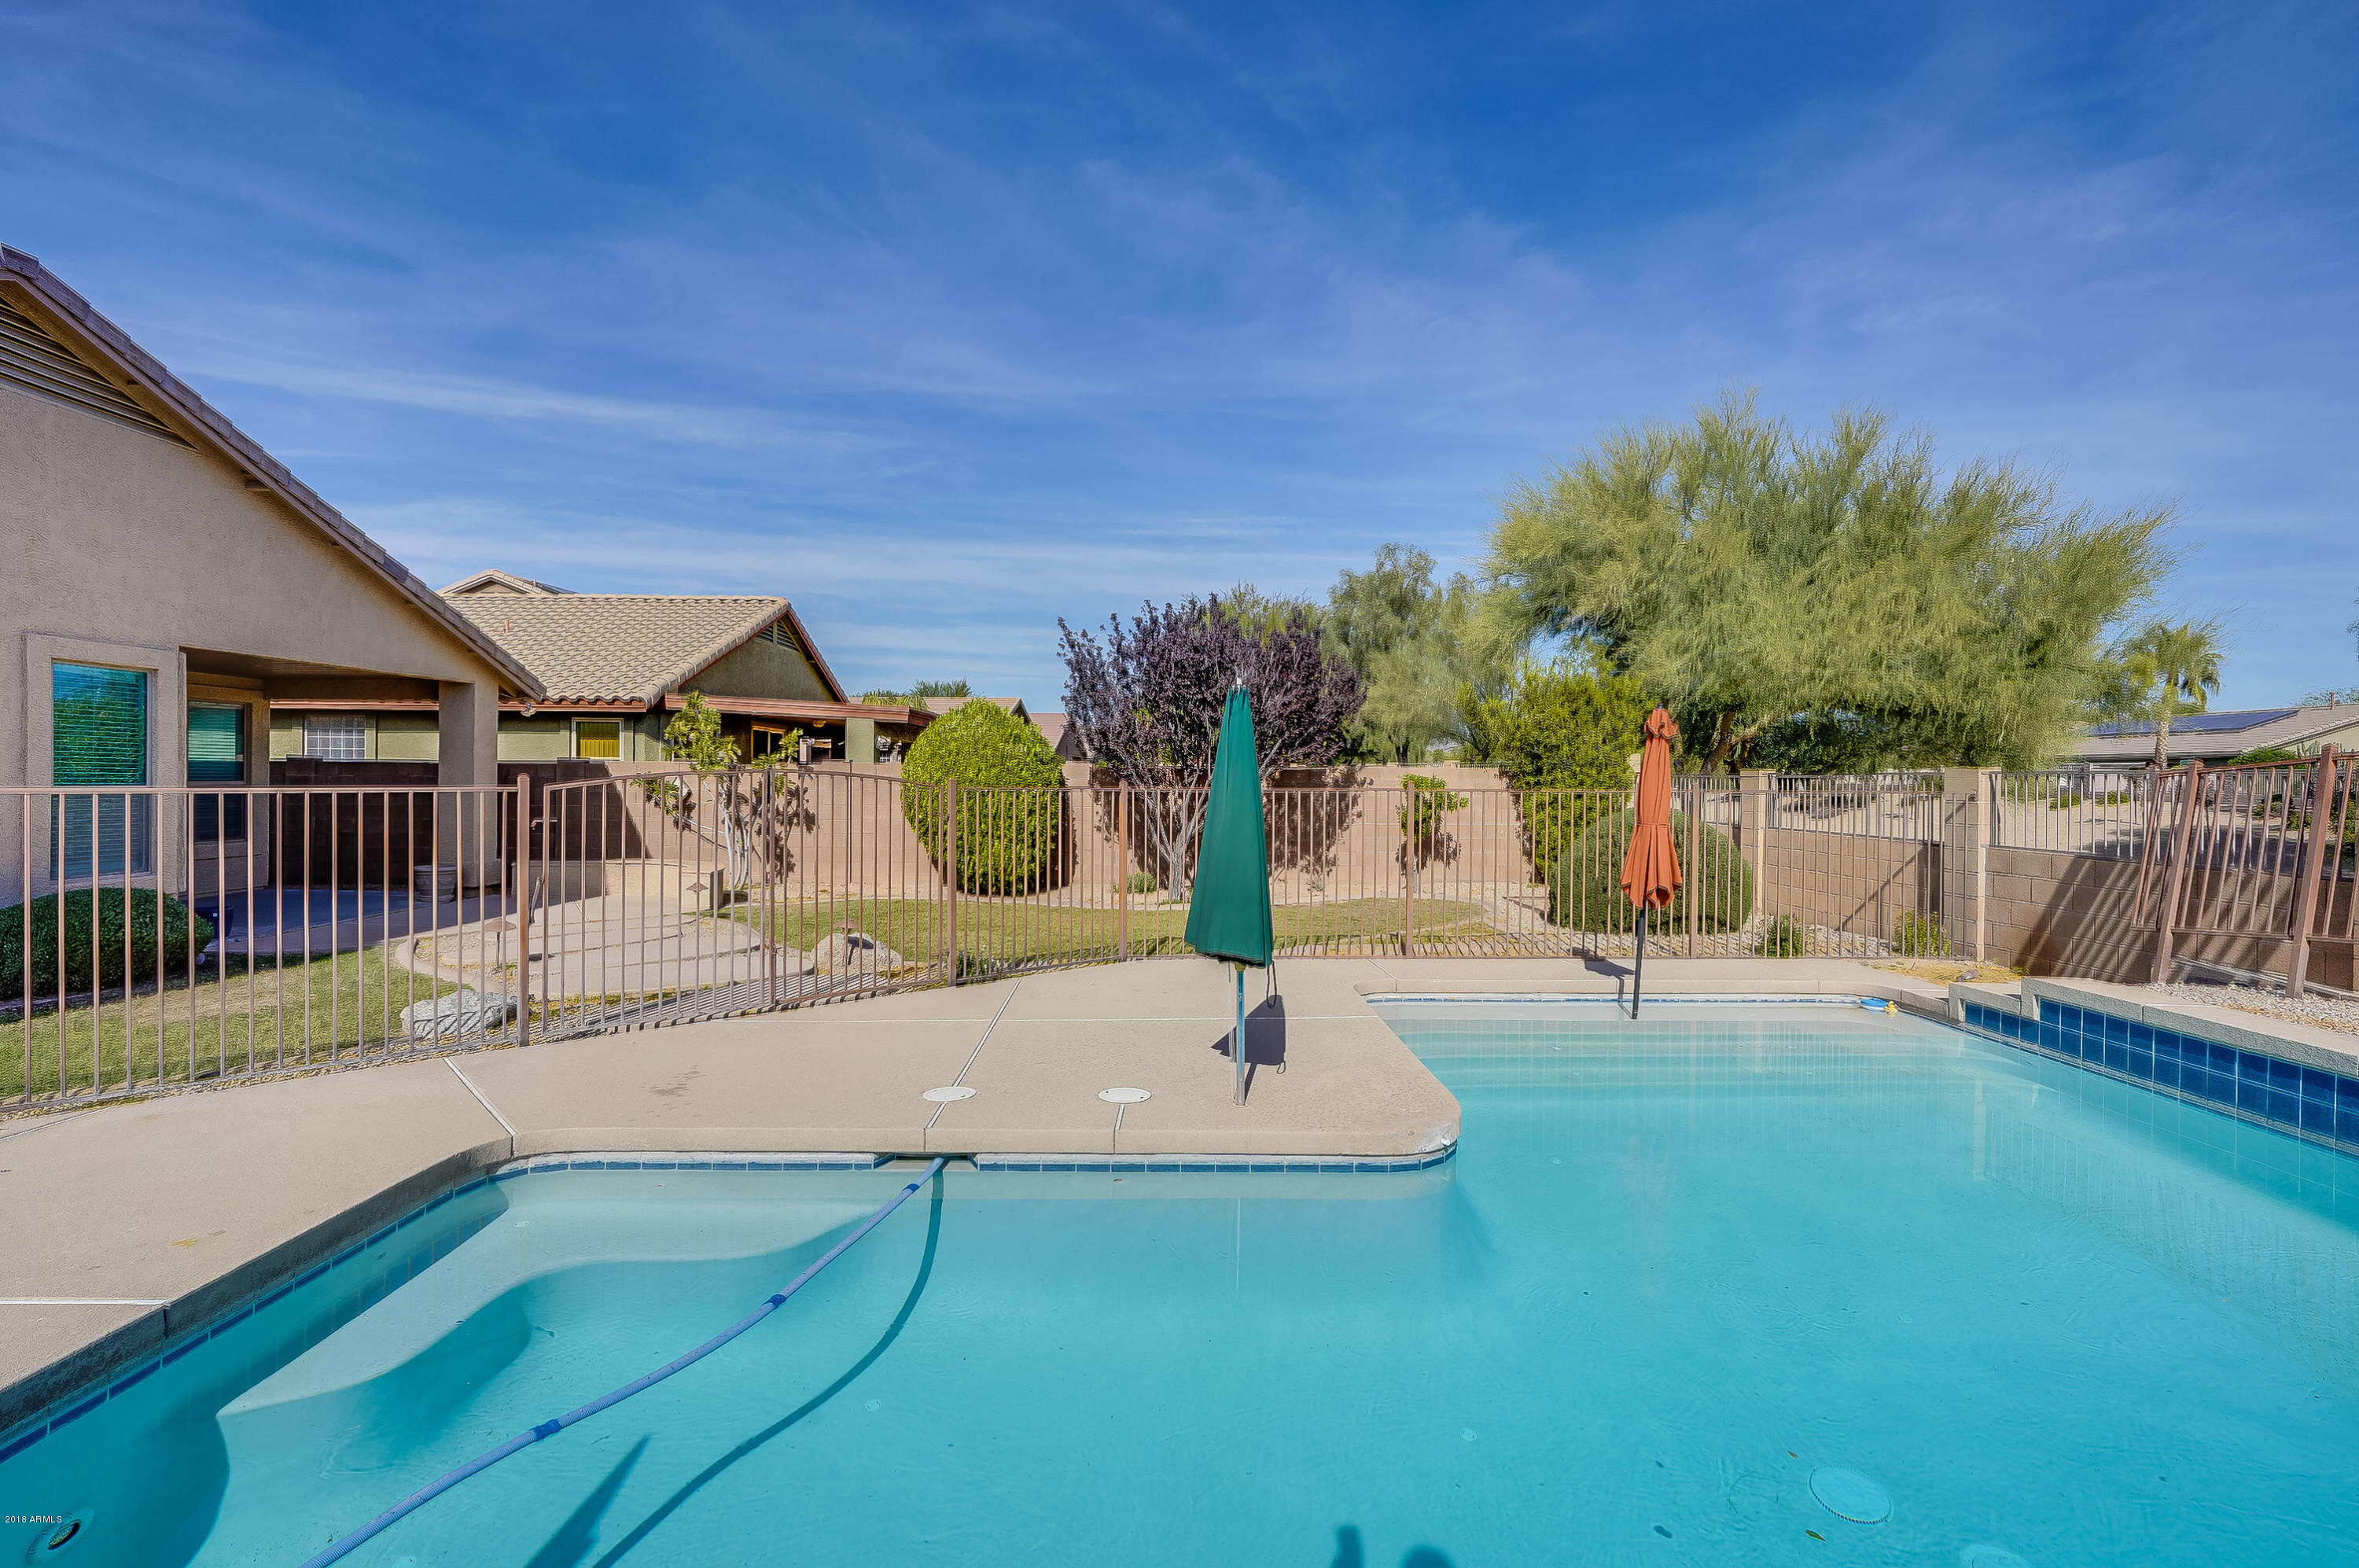 MLS 5852317 20547 N 89TH Drive, Peoria, AZ 85382 Peoria AZ Dove Valley Ranch